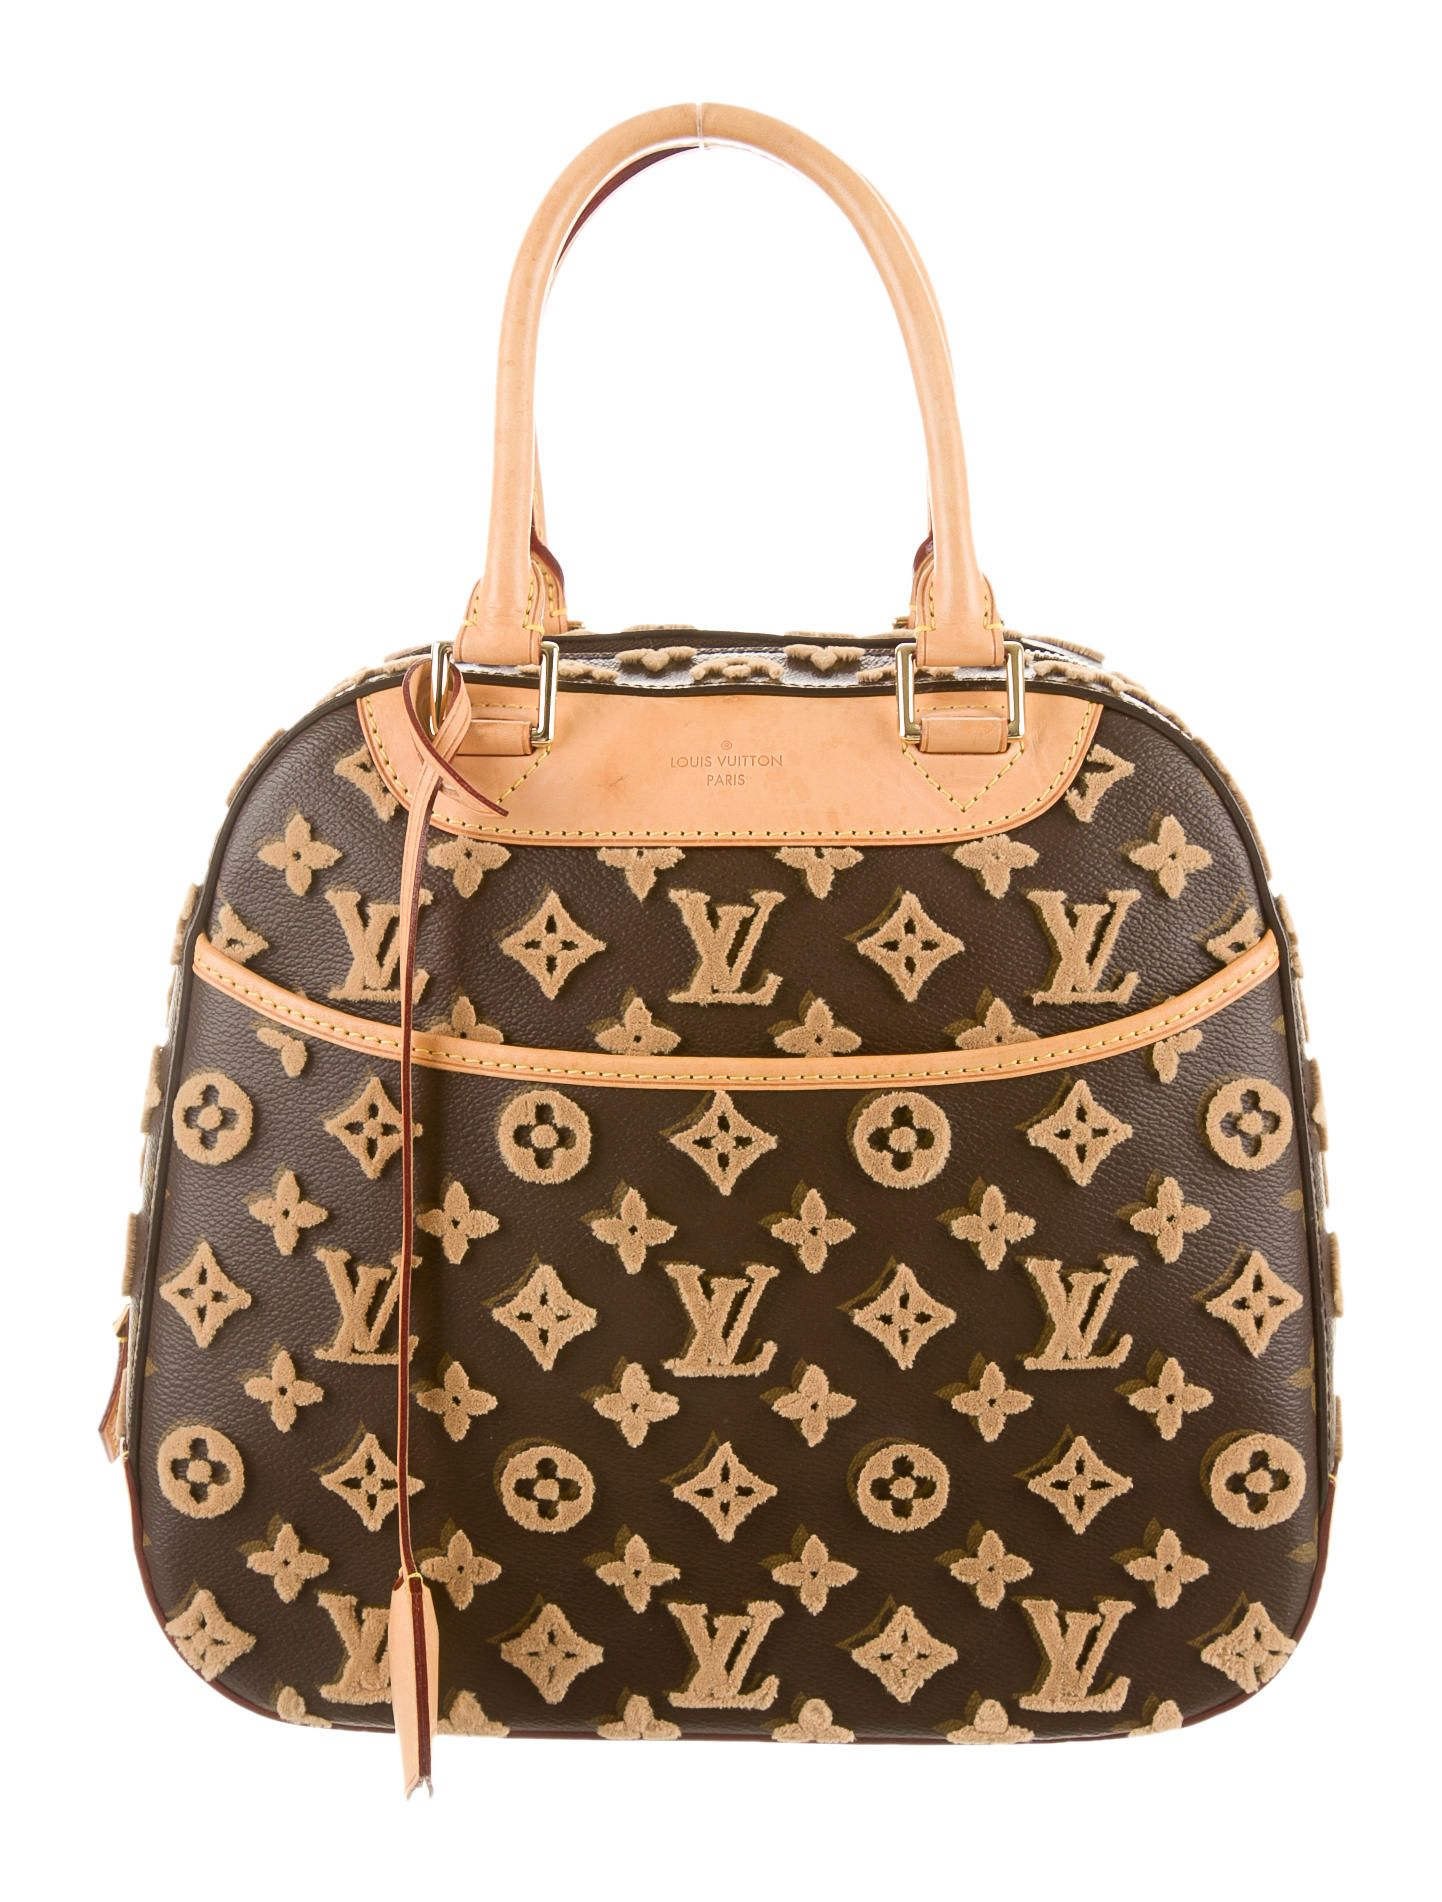 Embossed Tuffetage Deauville Cube Bag Louis Vuitton Bags Louis